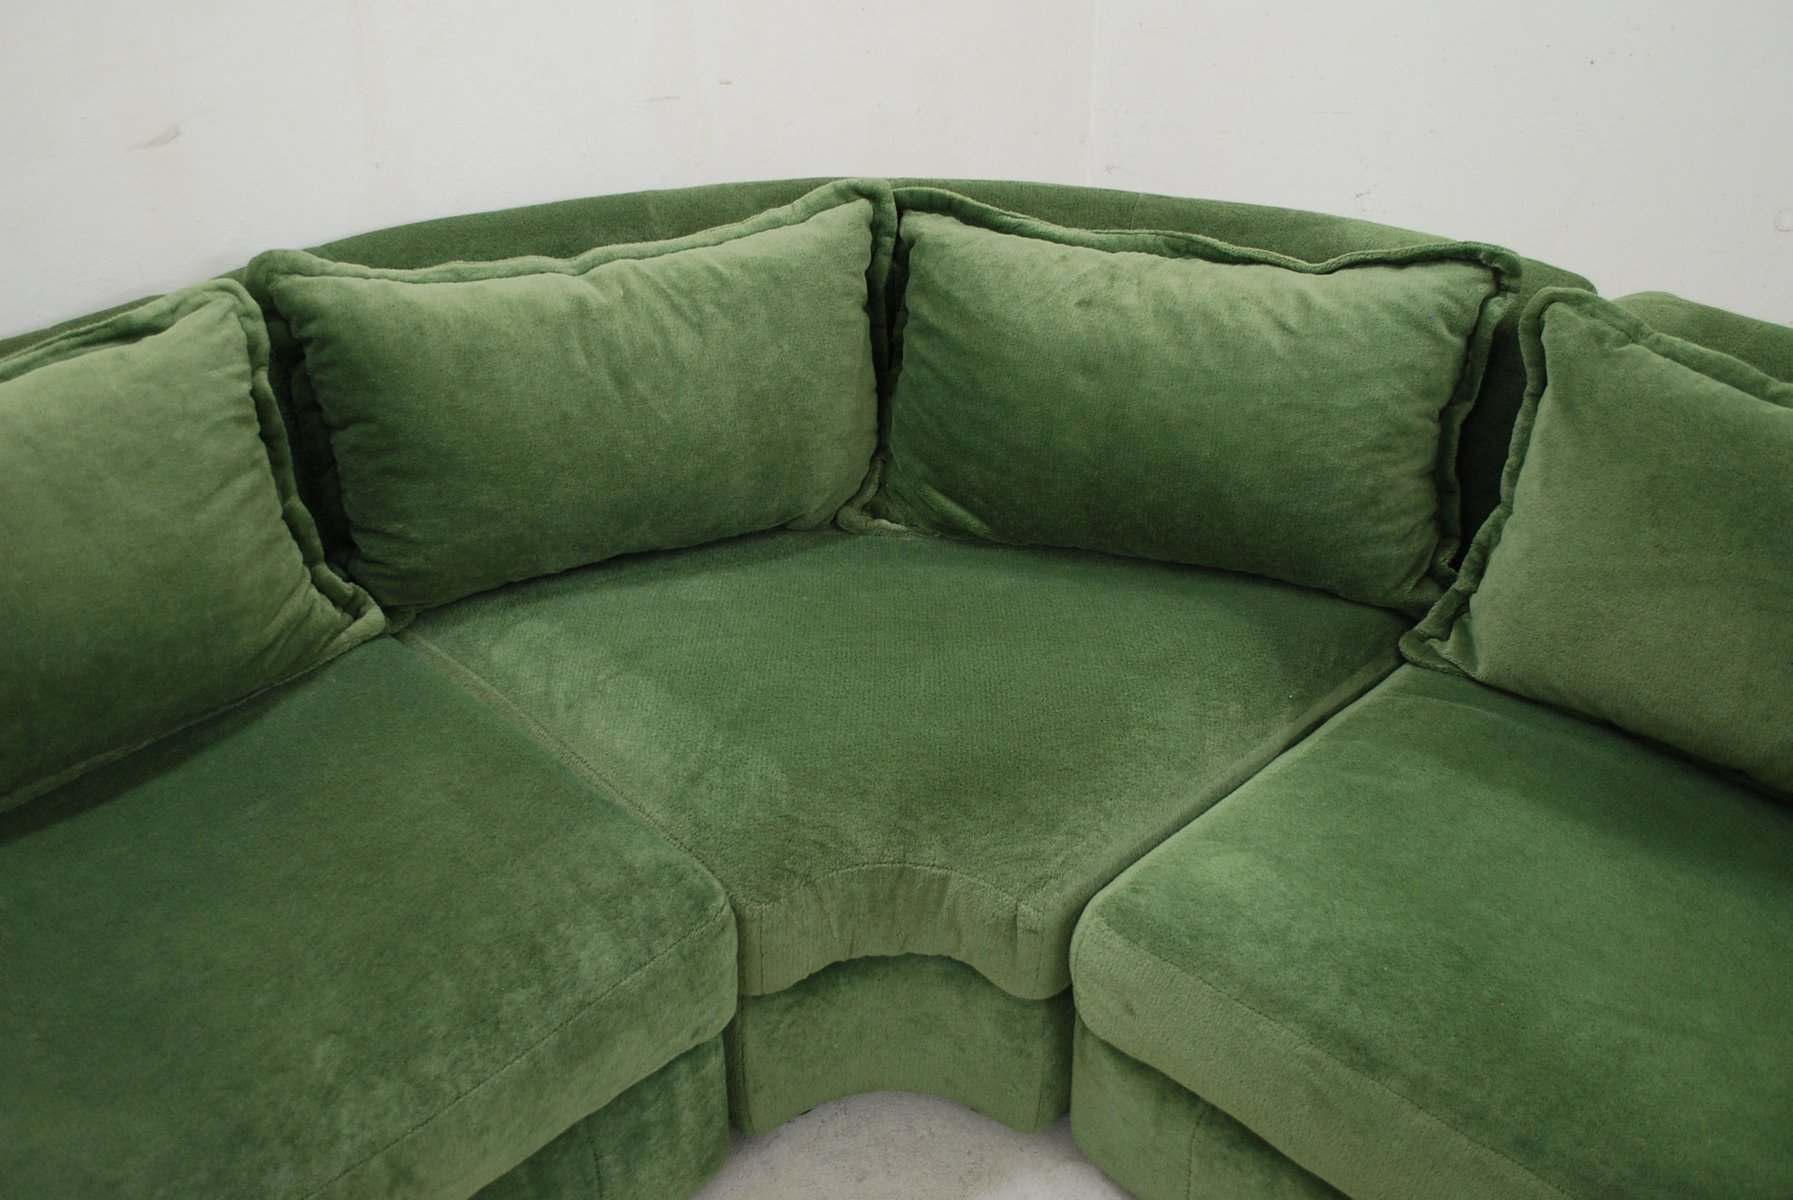 Vintage green modular sofa from rolf benz for sale at pamono Rolf benz 322 sofa